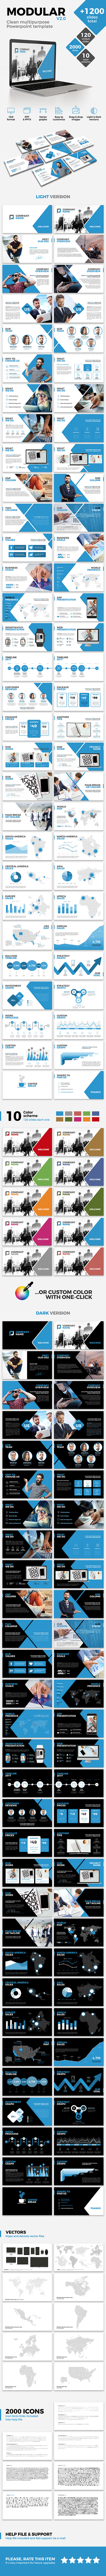 MODULAR / Modern and clean multipurpose professional Powerpoint template